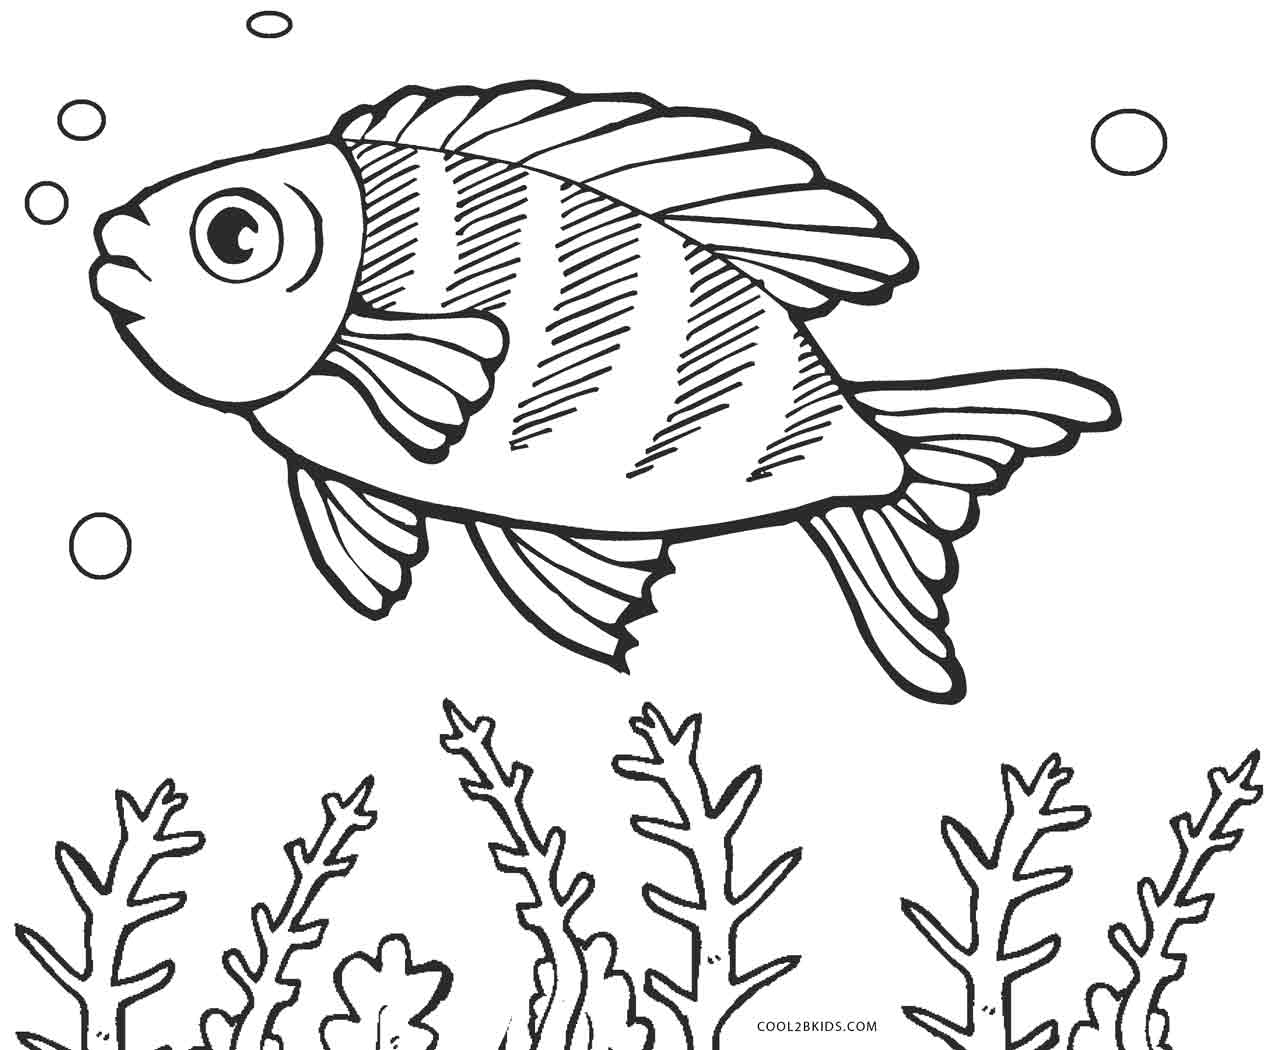 coloring pages of fishing - photo#34